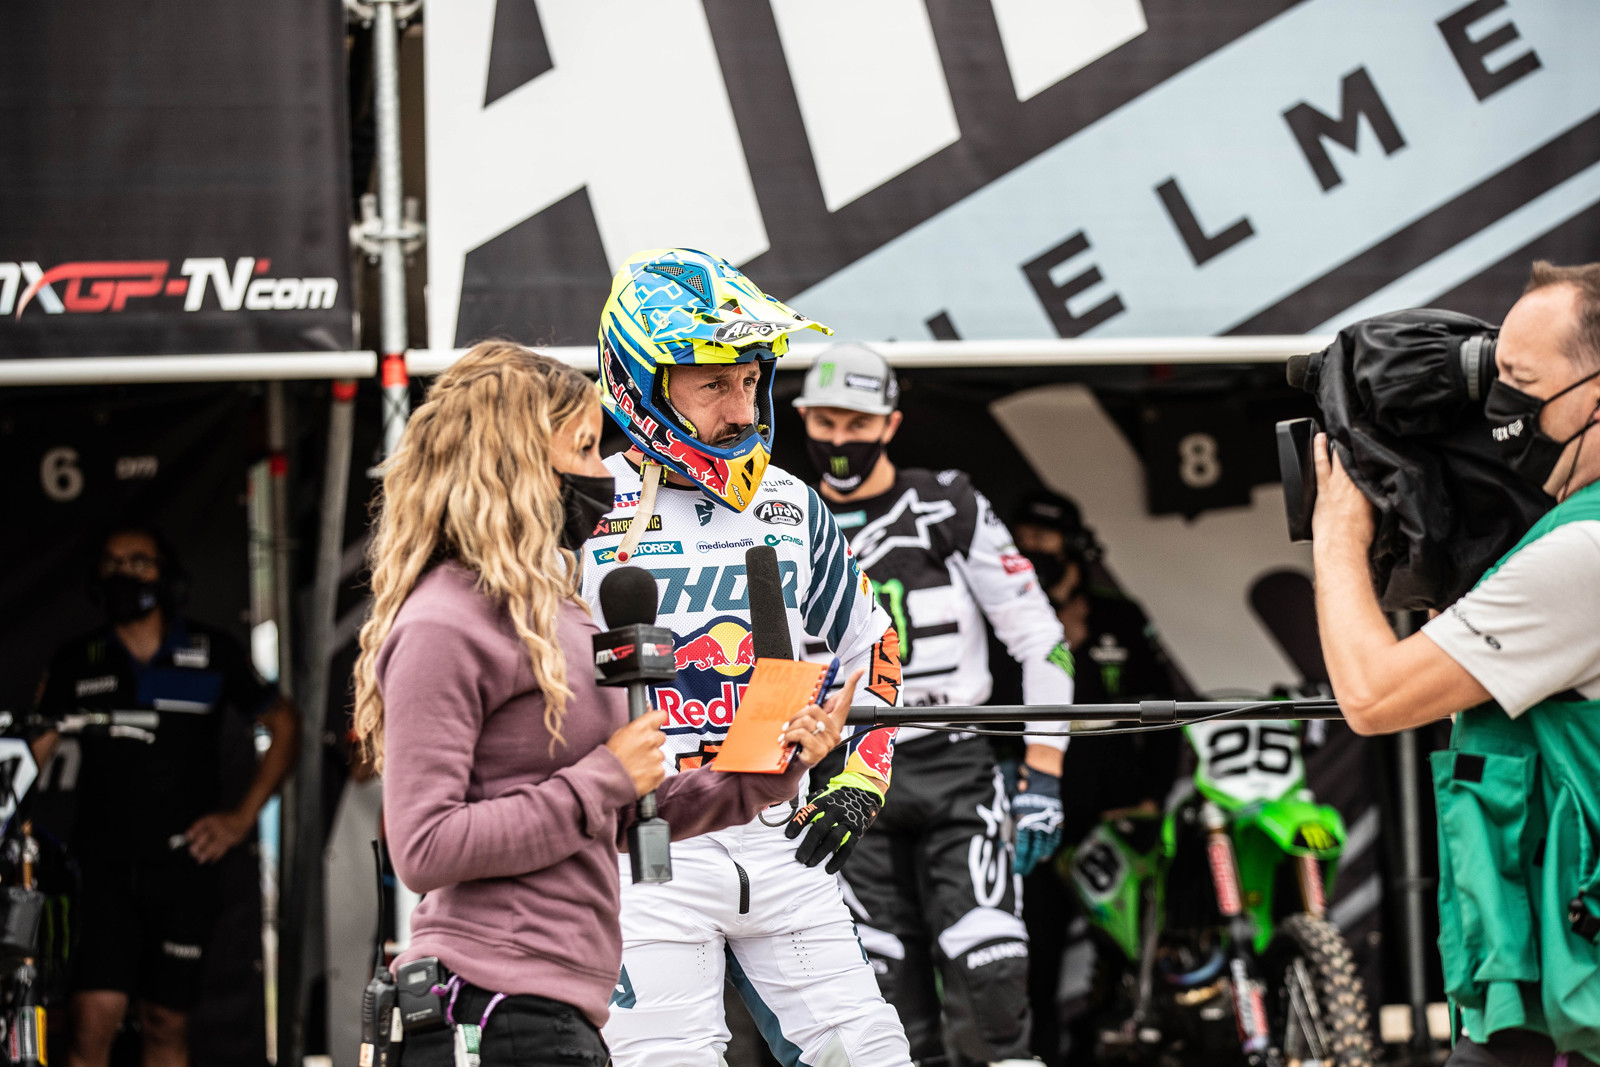 Practicing social distancing with the boom mic, it was super cool for Cairoli to take the overall with 1-4 moto scores.